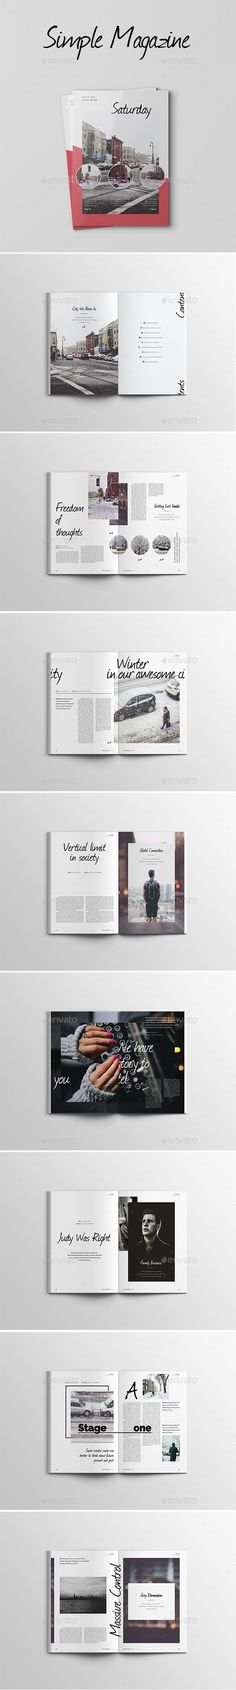 32 Pages Simple Magazine - Magazines Print Templates Download here : https://graphicriver.net/item/32-pages-simple-magazine/16396440?s_rank=204&ref=Al-fatih